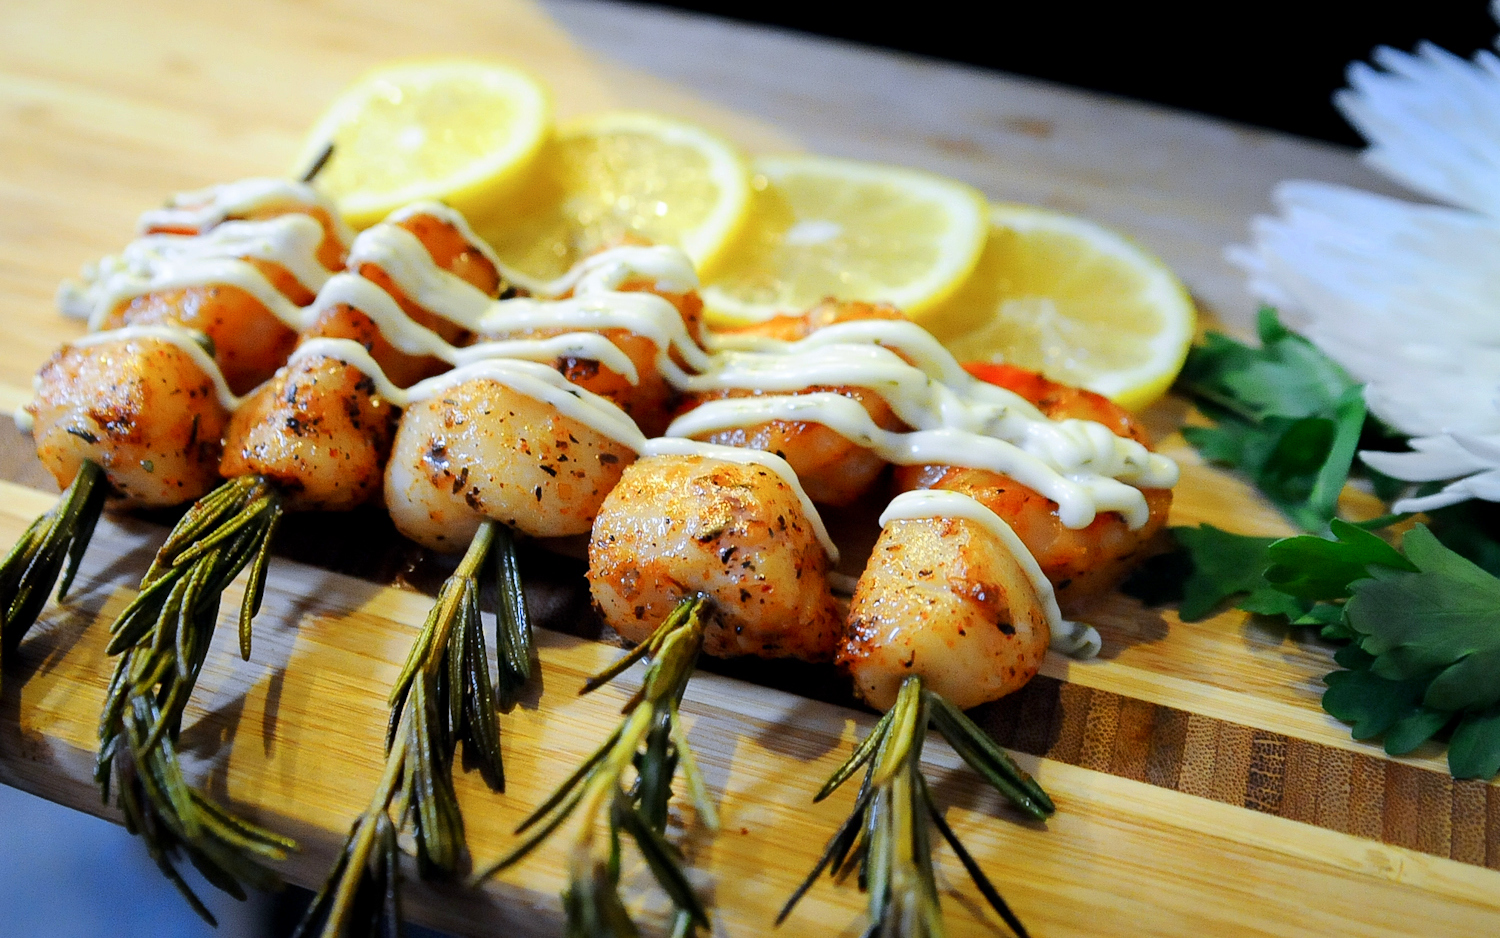 Scallop kebabs